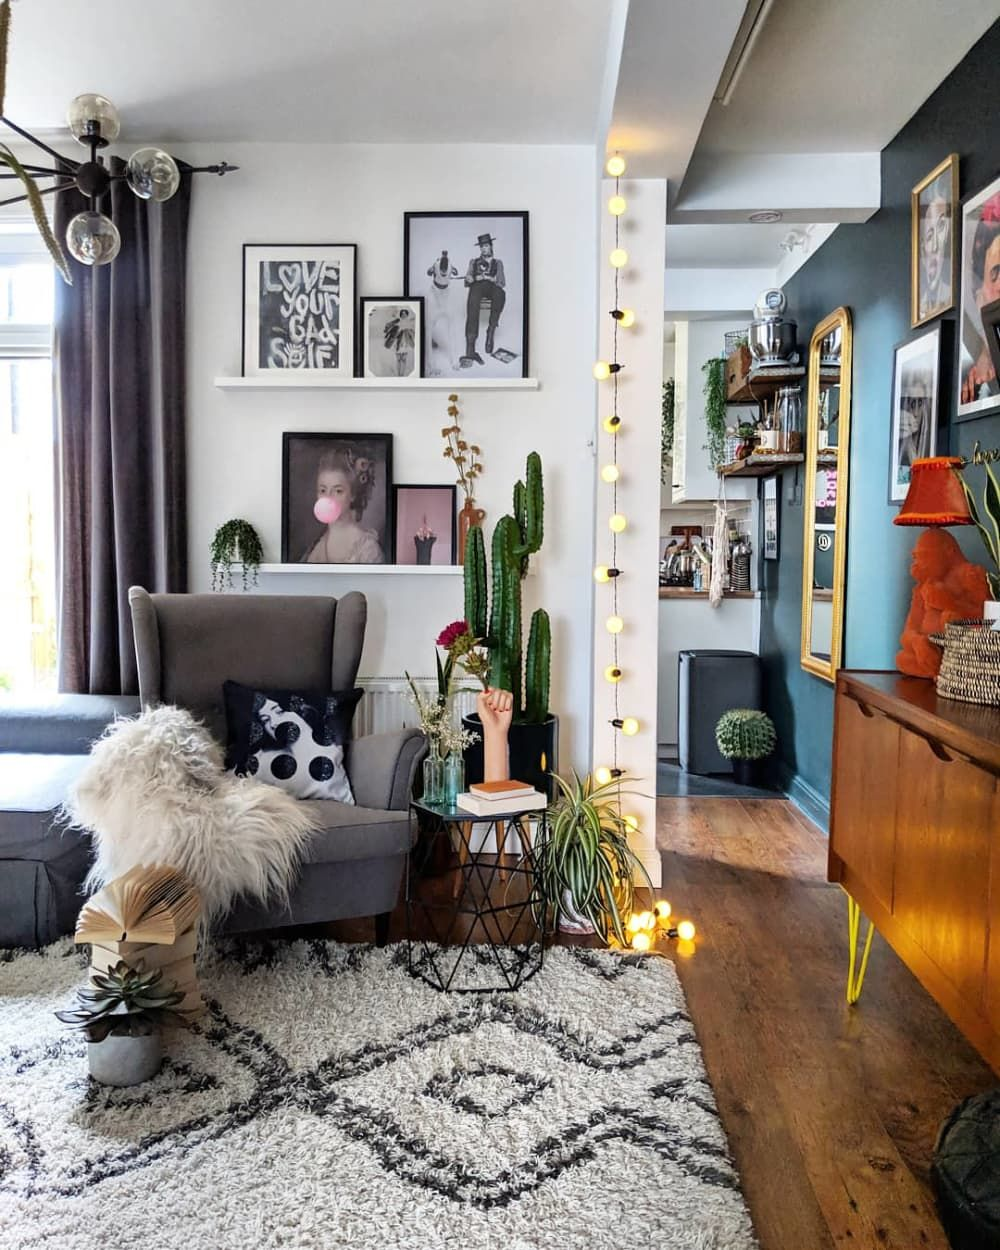 Find Tons Of Decor Inspiration In This Quirky And Colorful Uk Home In 2020 Quirky Home Decor Eclectic Home Stylish Living Room